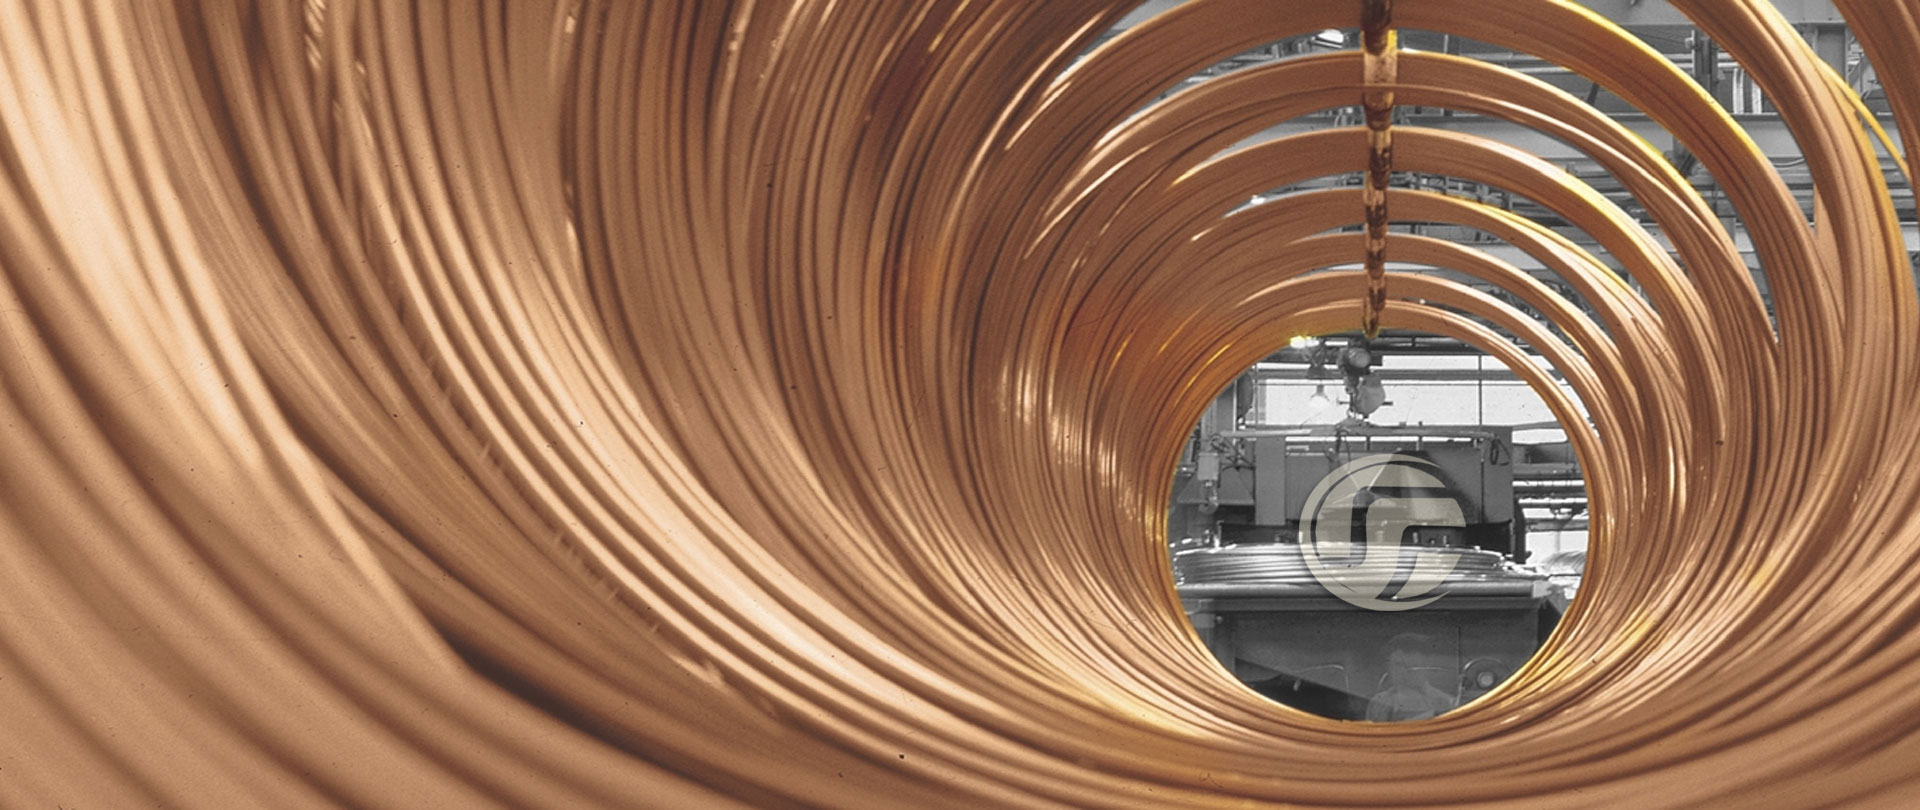 Copper-Nickel Alloys supplier